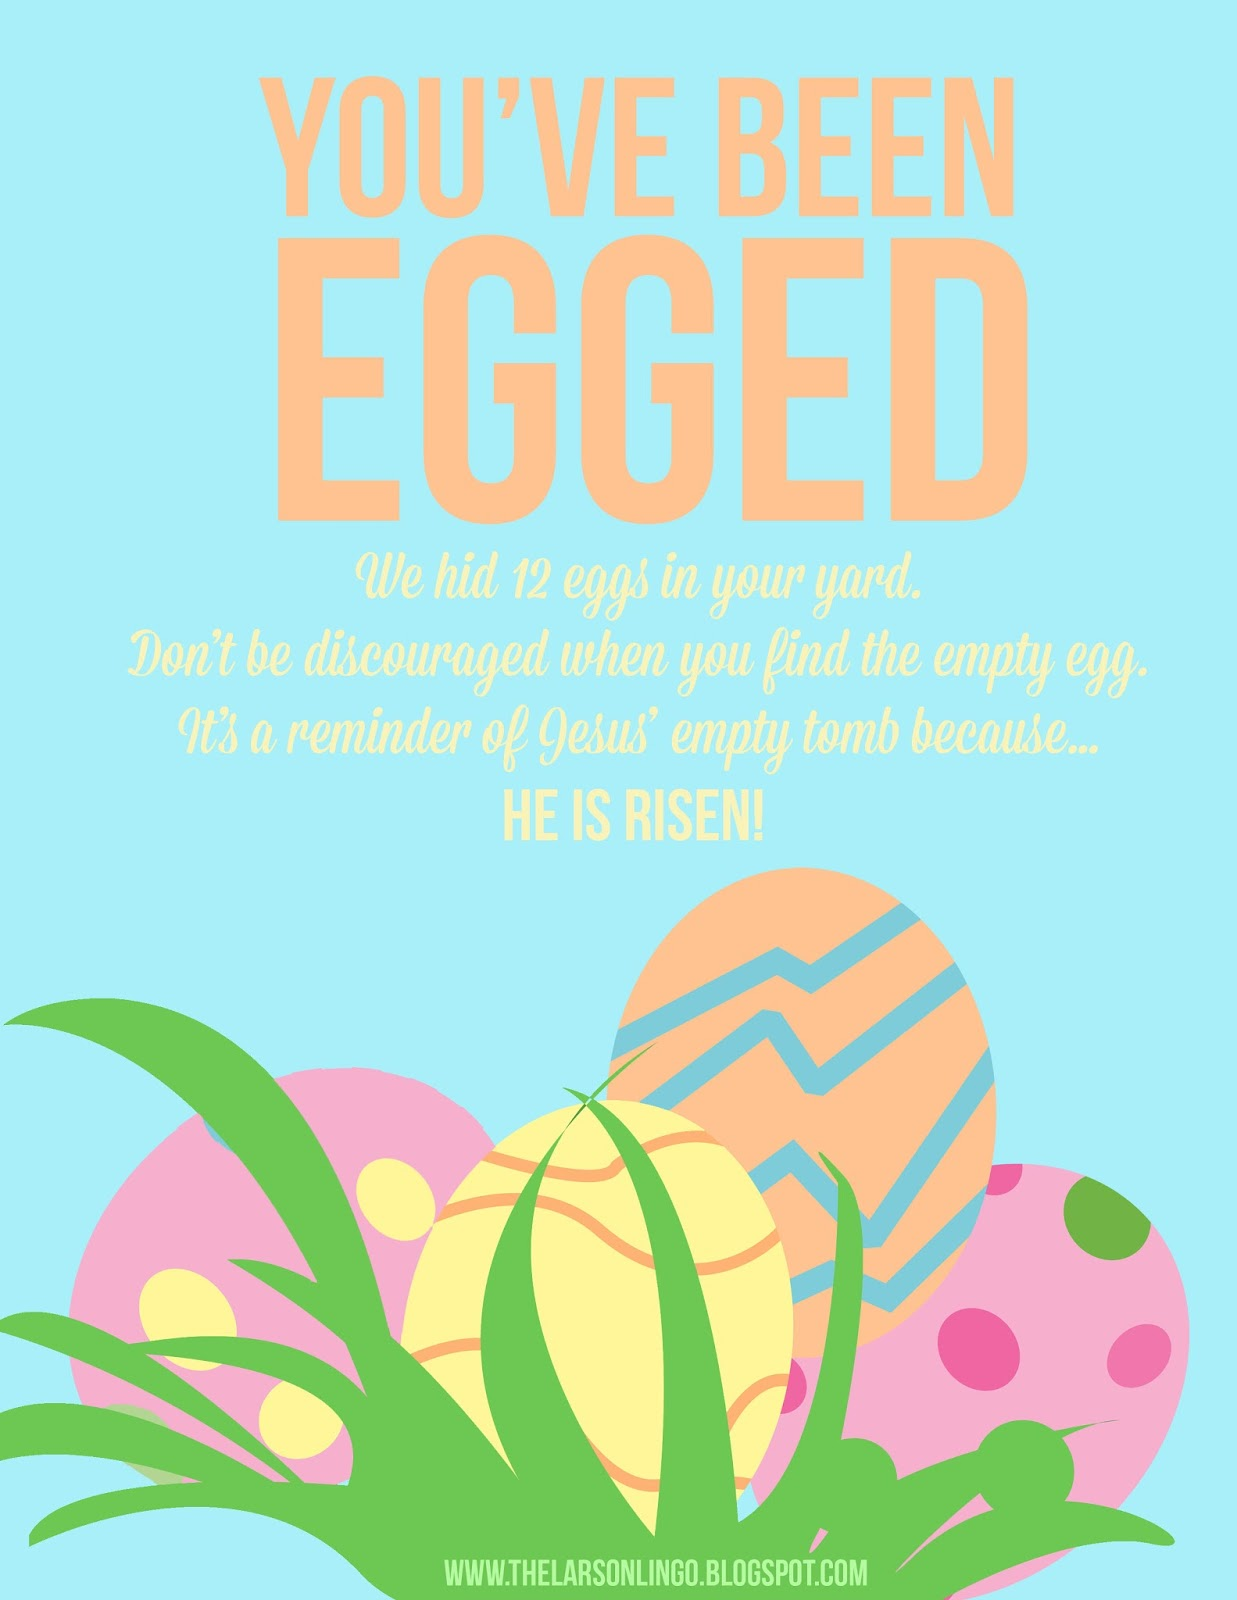 graphic regarding You've Been Egged Printable identify The Larson Lingo: Youve Been Egged! Free of charge Printable